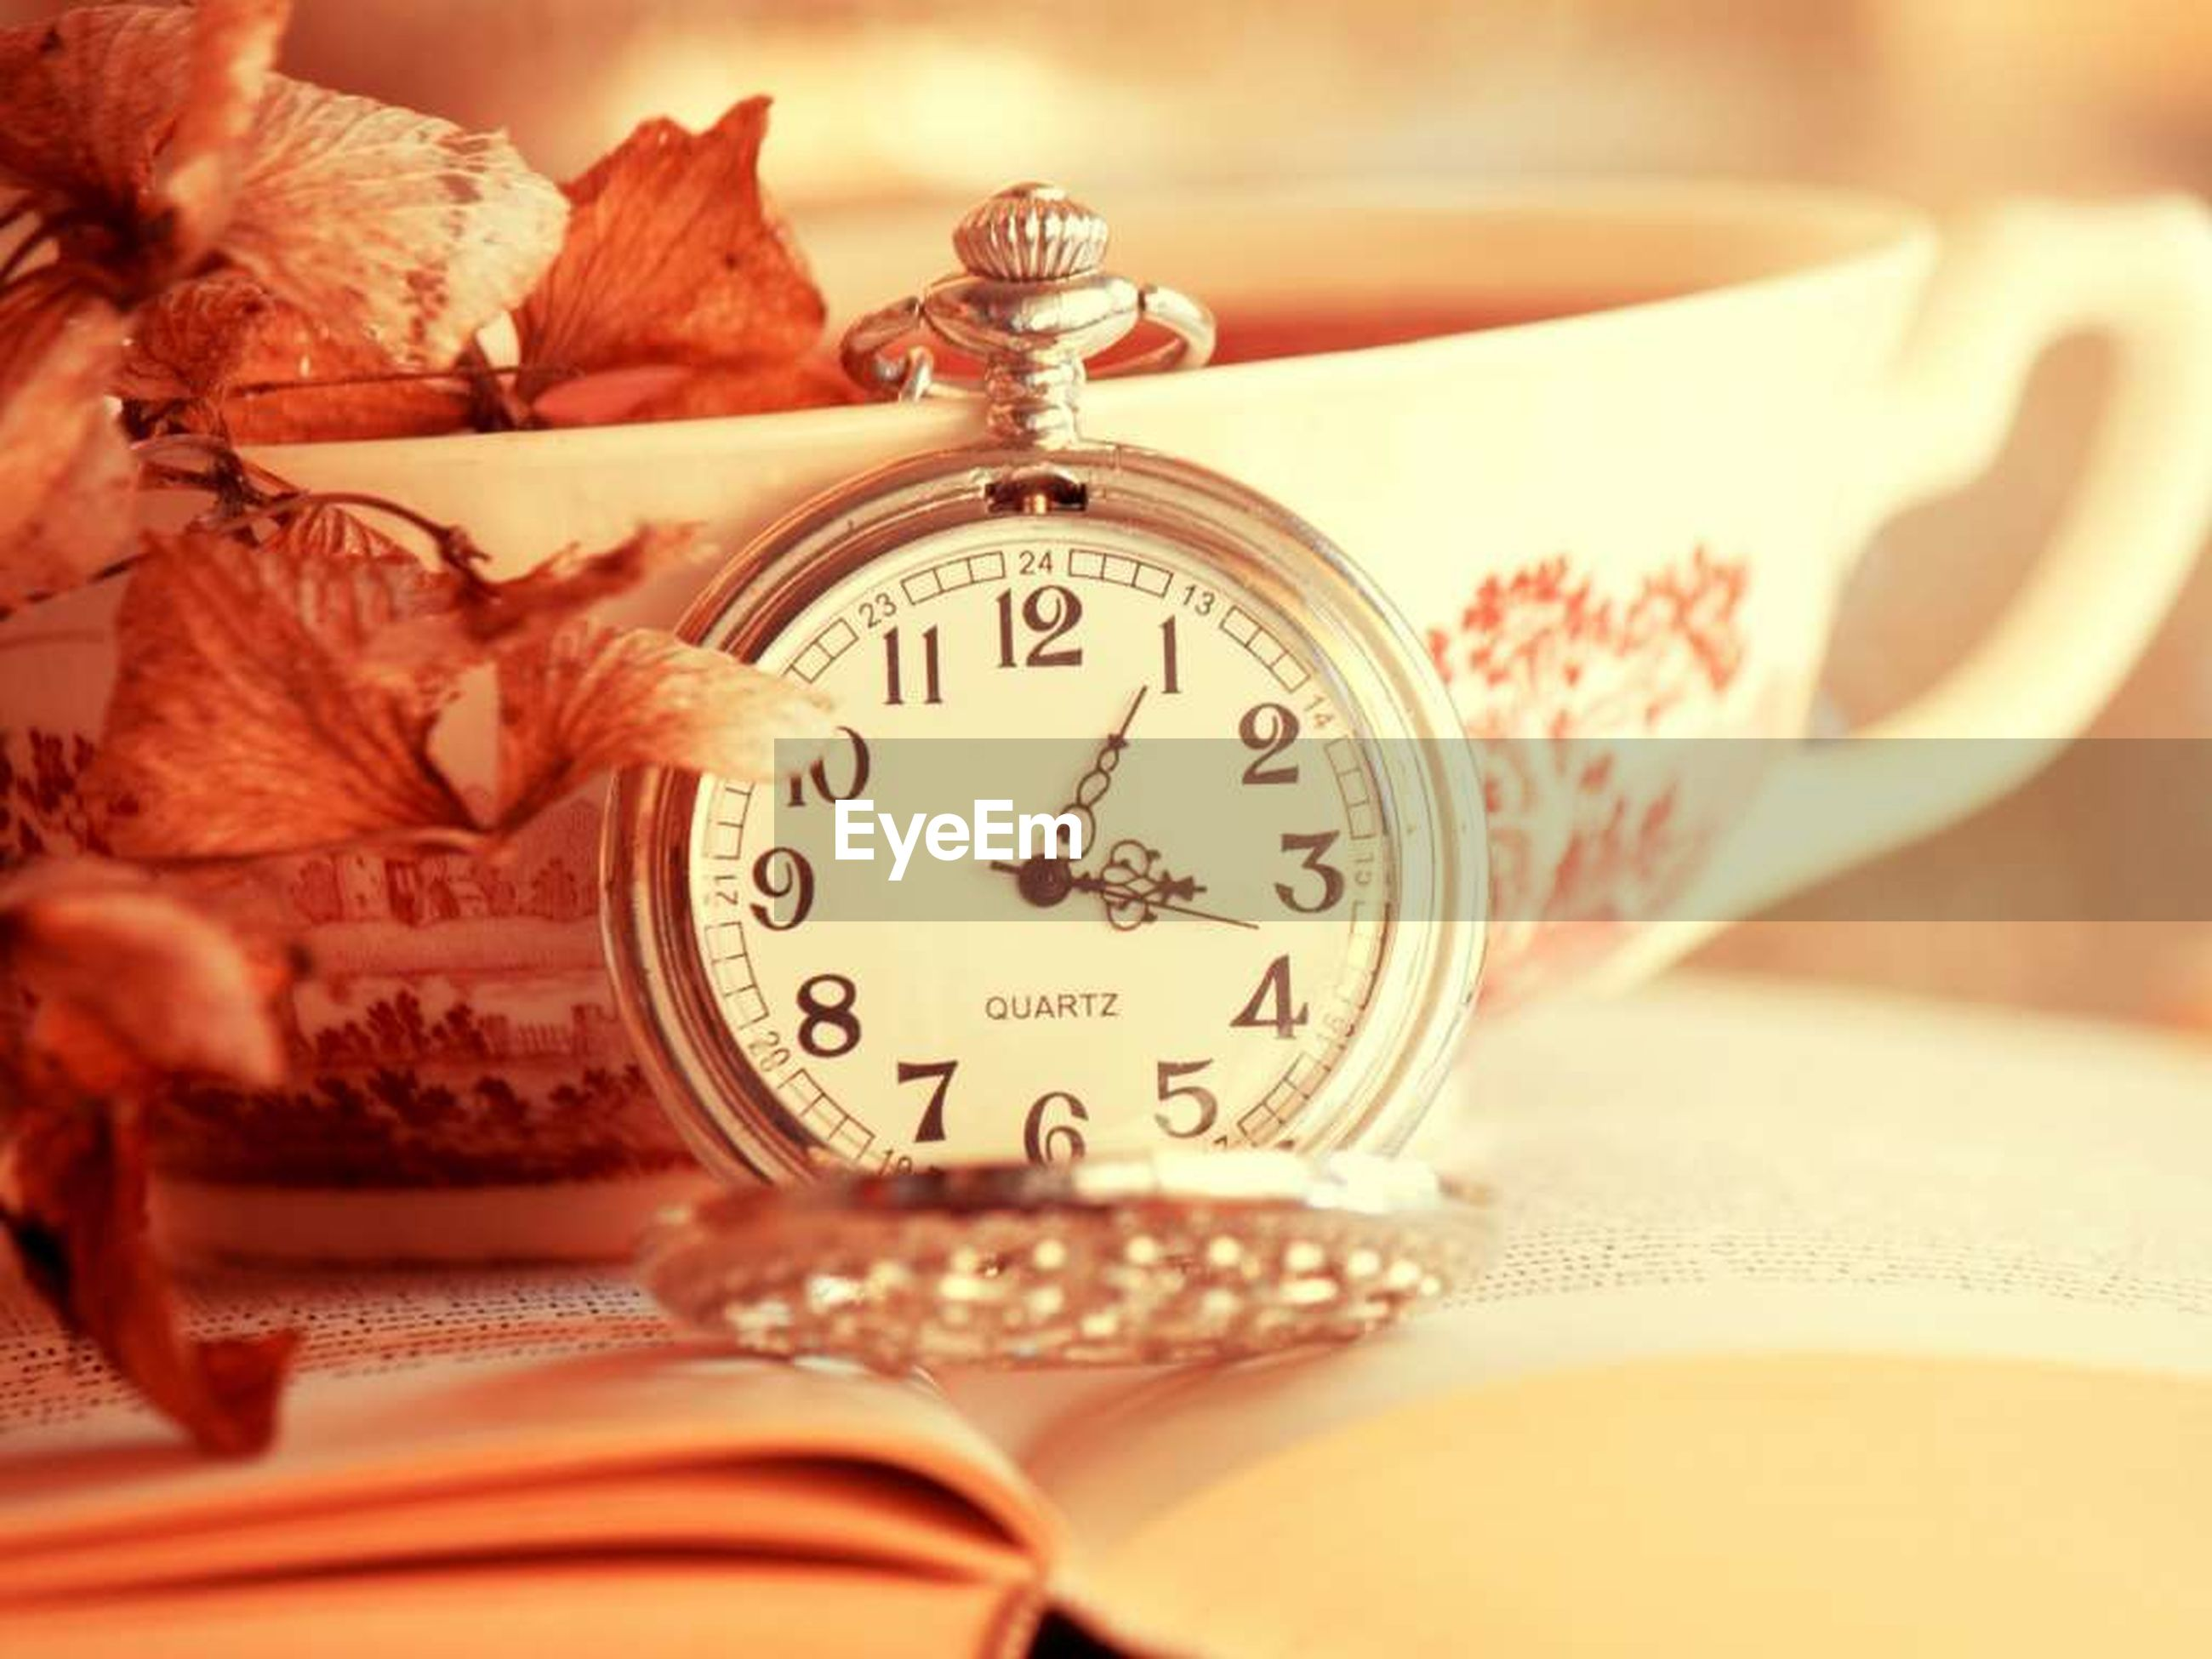 indoors, close-up, still life, table, text, communication, time, single object, wealth, art and craft, no people, antique, number, western script, coin, selective focus, home interior, old-fashioned, focus on foreground, art